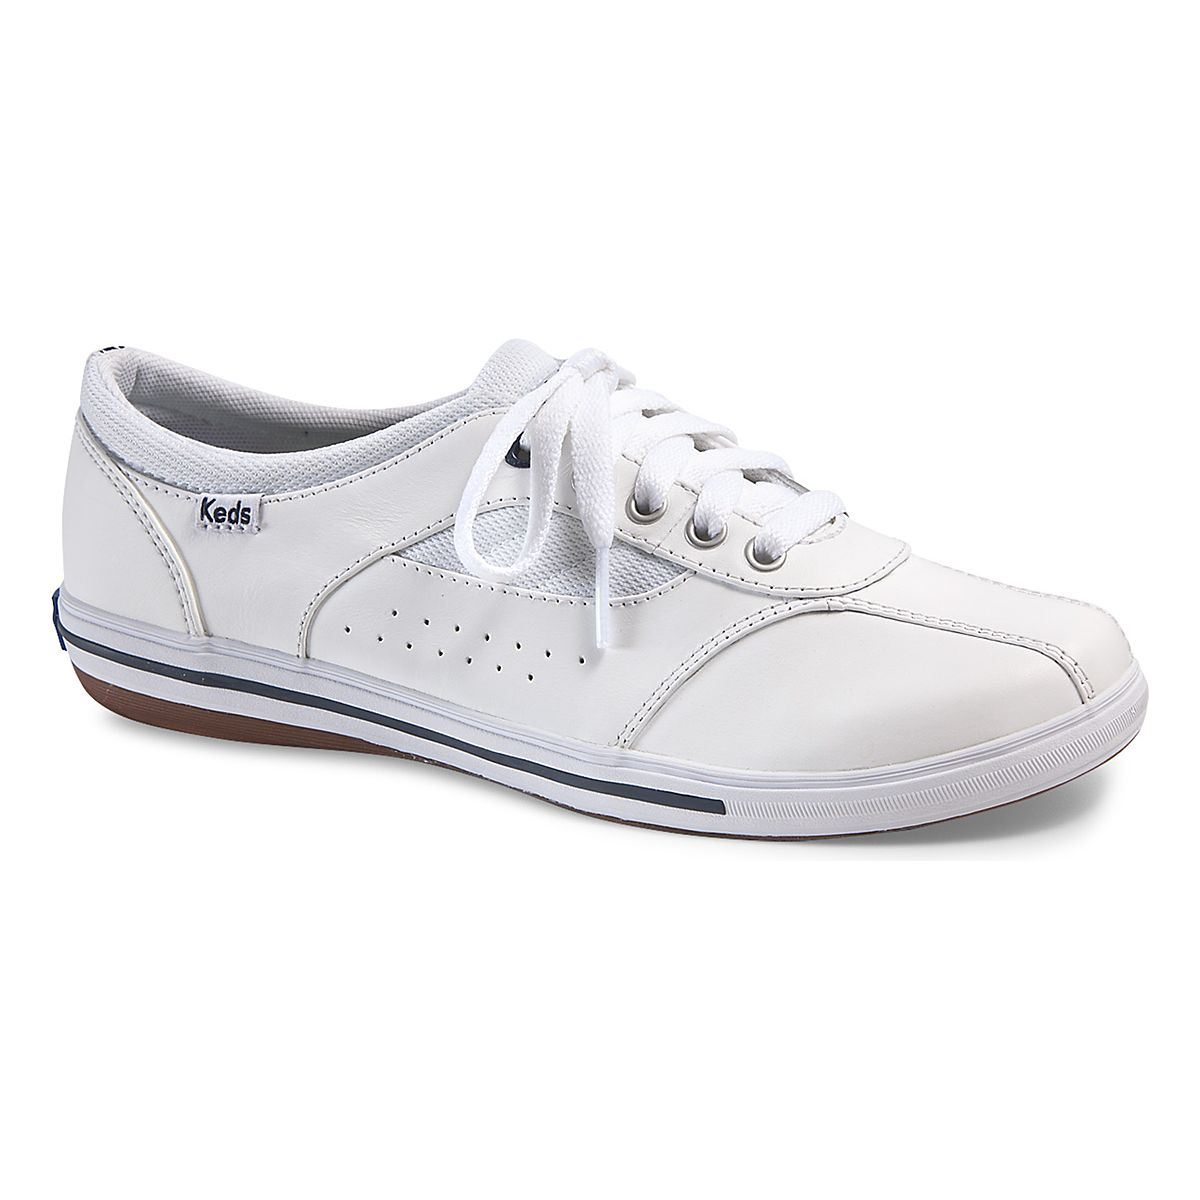 Keds Footwear. Add timeless style to your footwear collection with Keds Shoes from Kohl's! Keds Footwear is perfect for everyday wear, and provide classic .